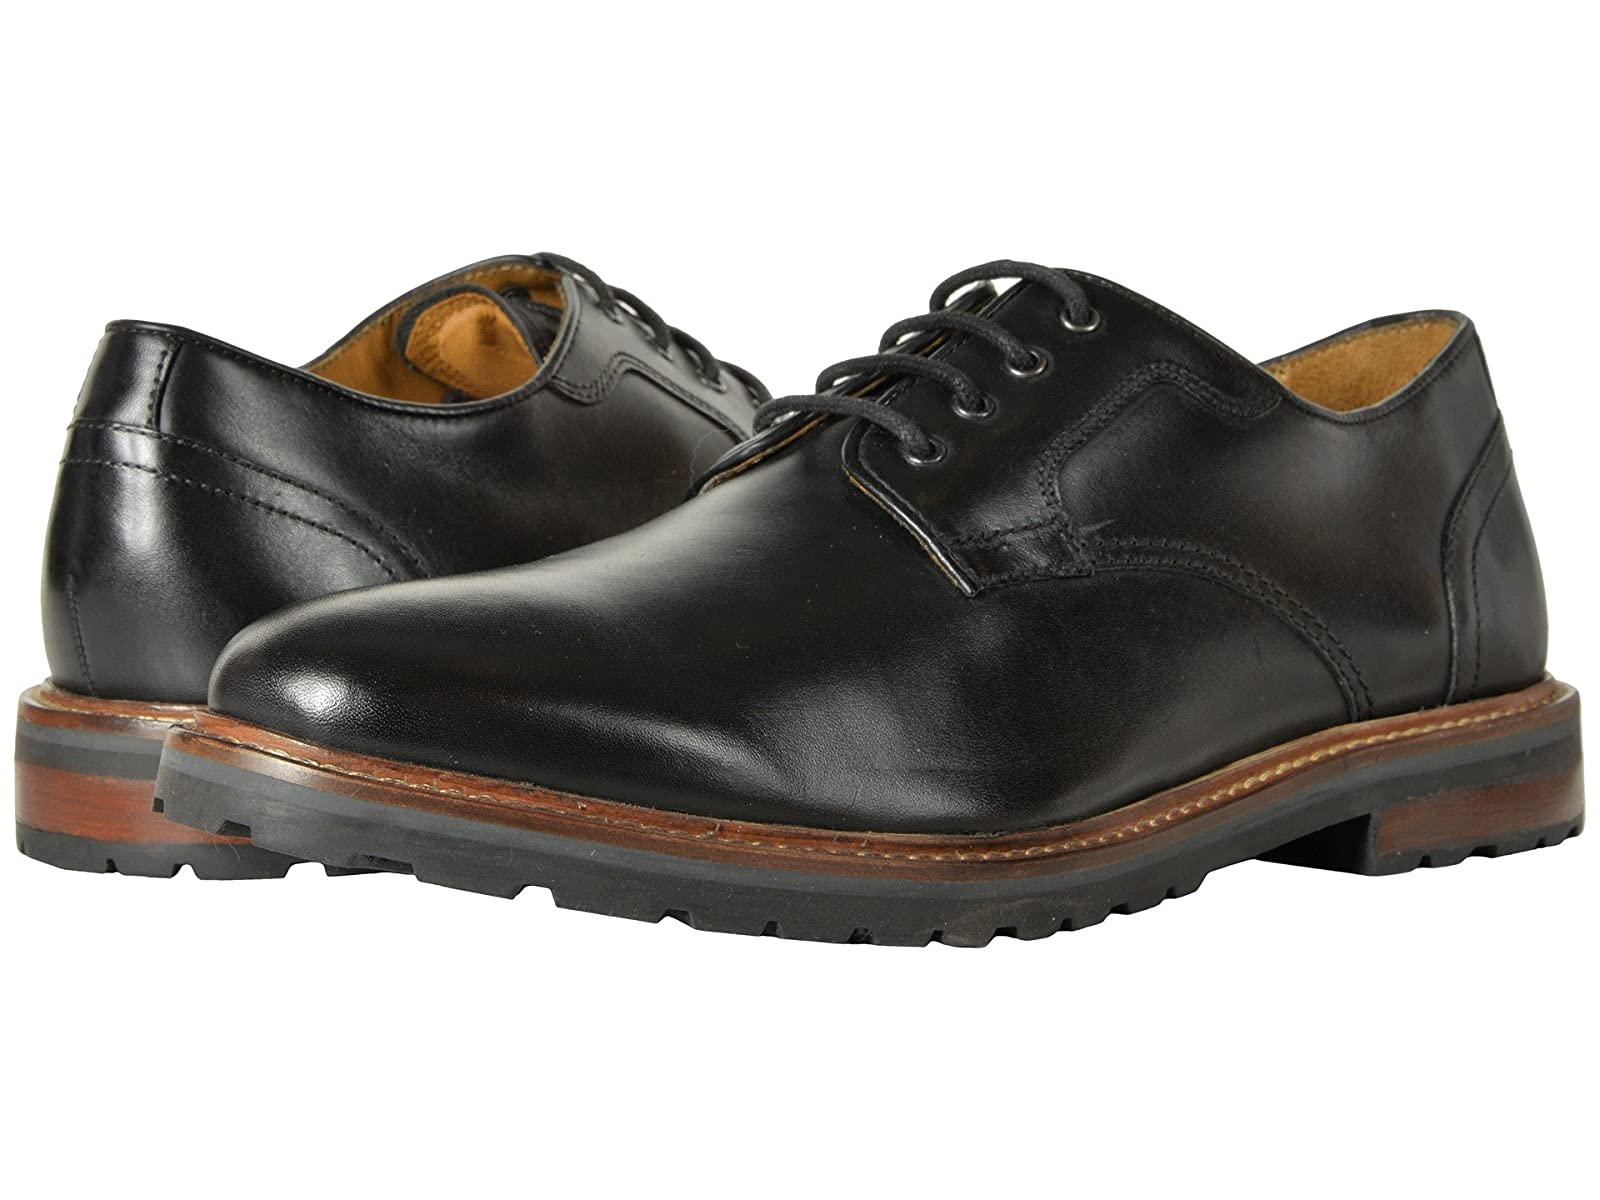 Florsheim Estabrook Plain Toe OxfordAtmospheric grades have affordable shoes